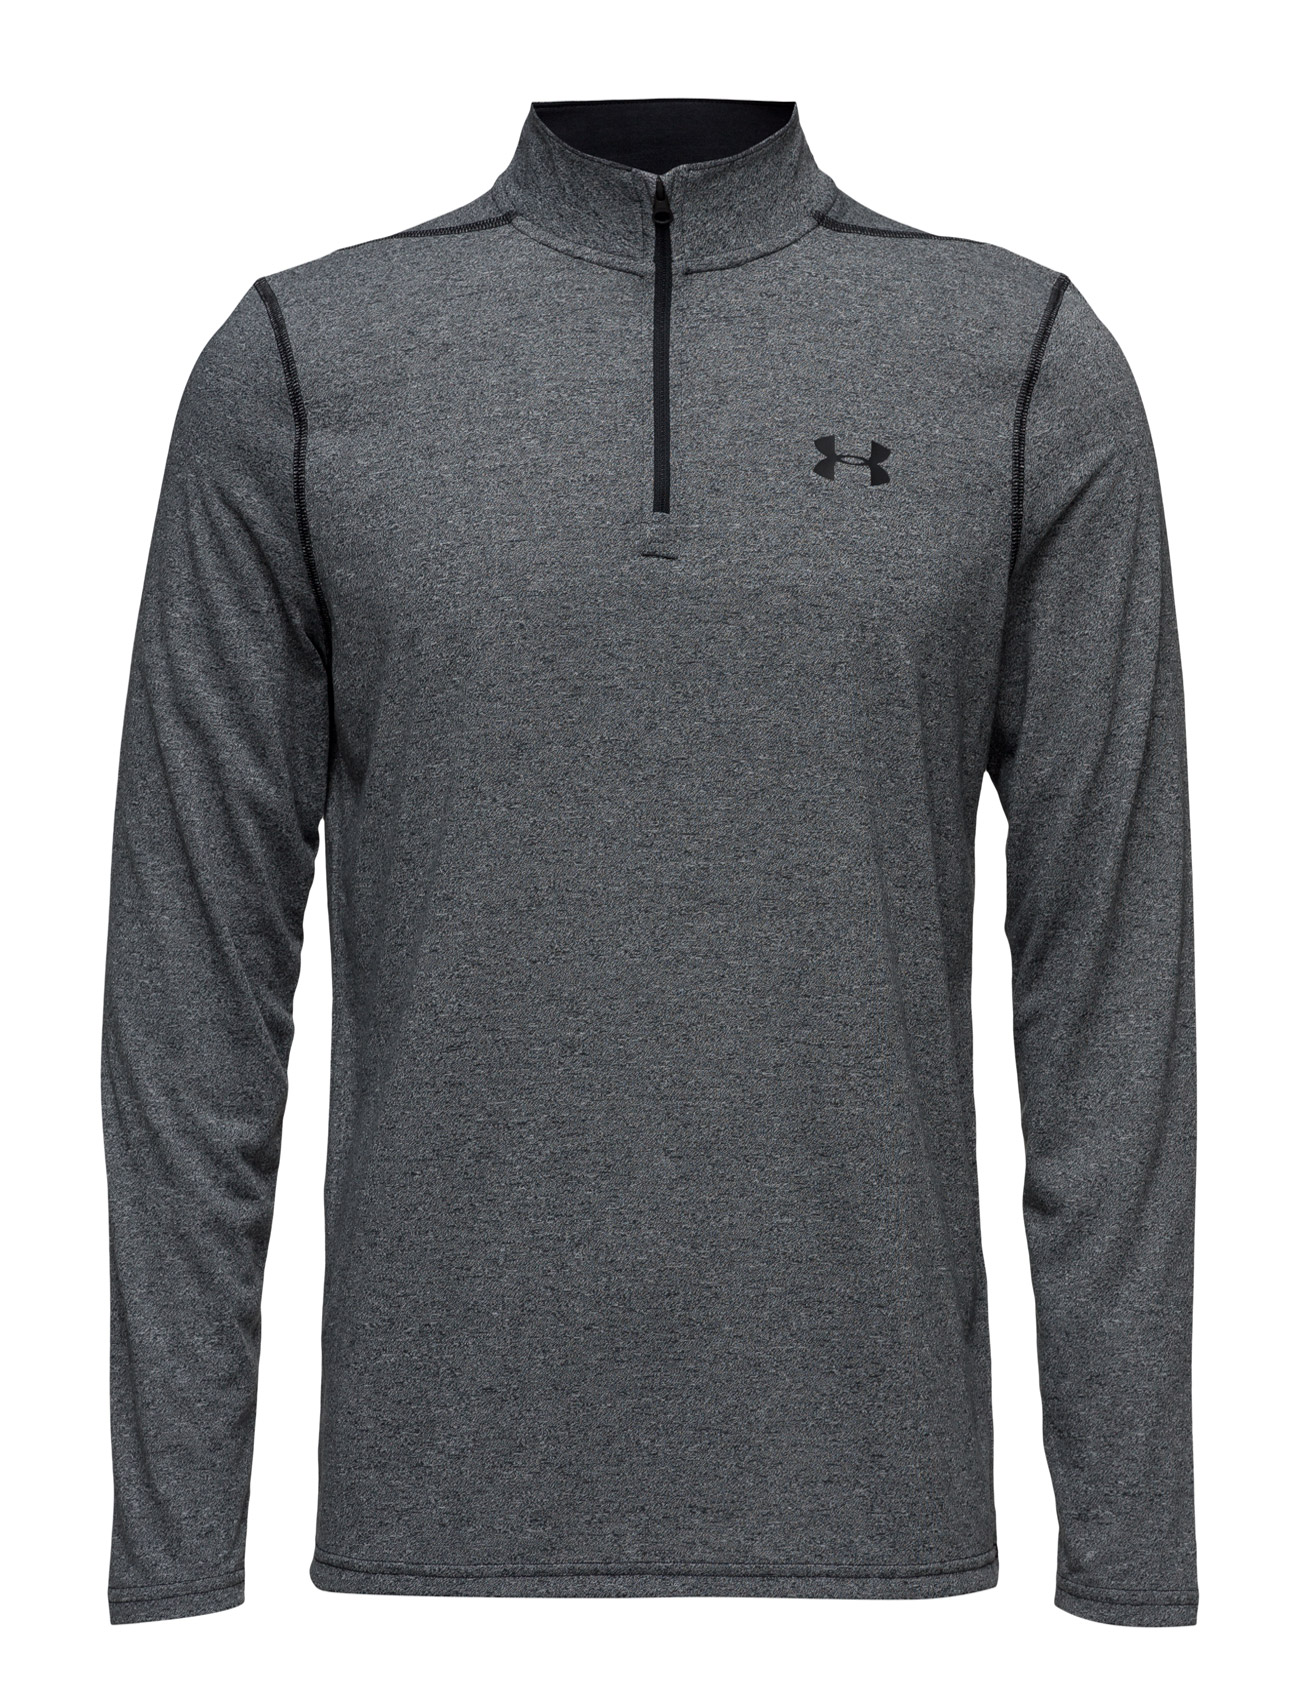 Threadborne Fitted 1/4 Zip Under Armour Sports toppe til Mænd i